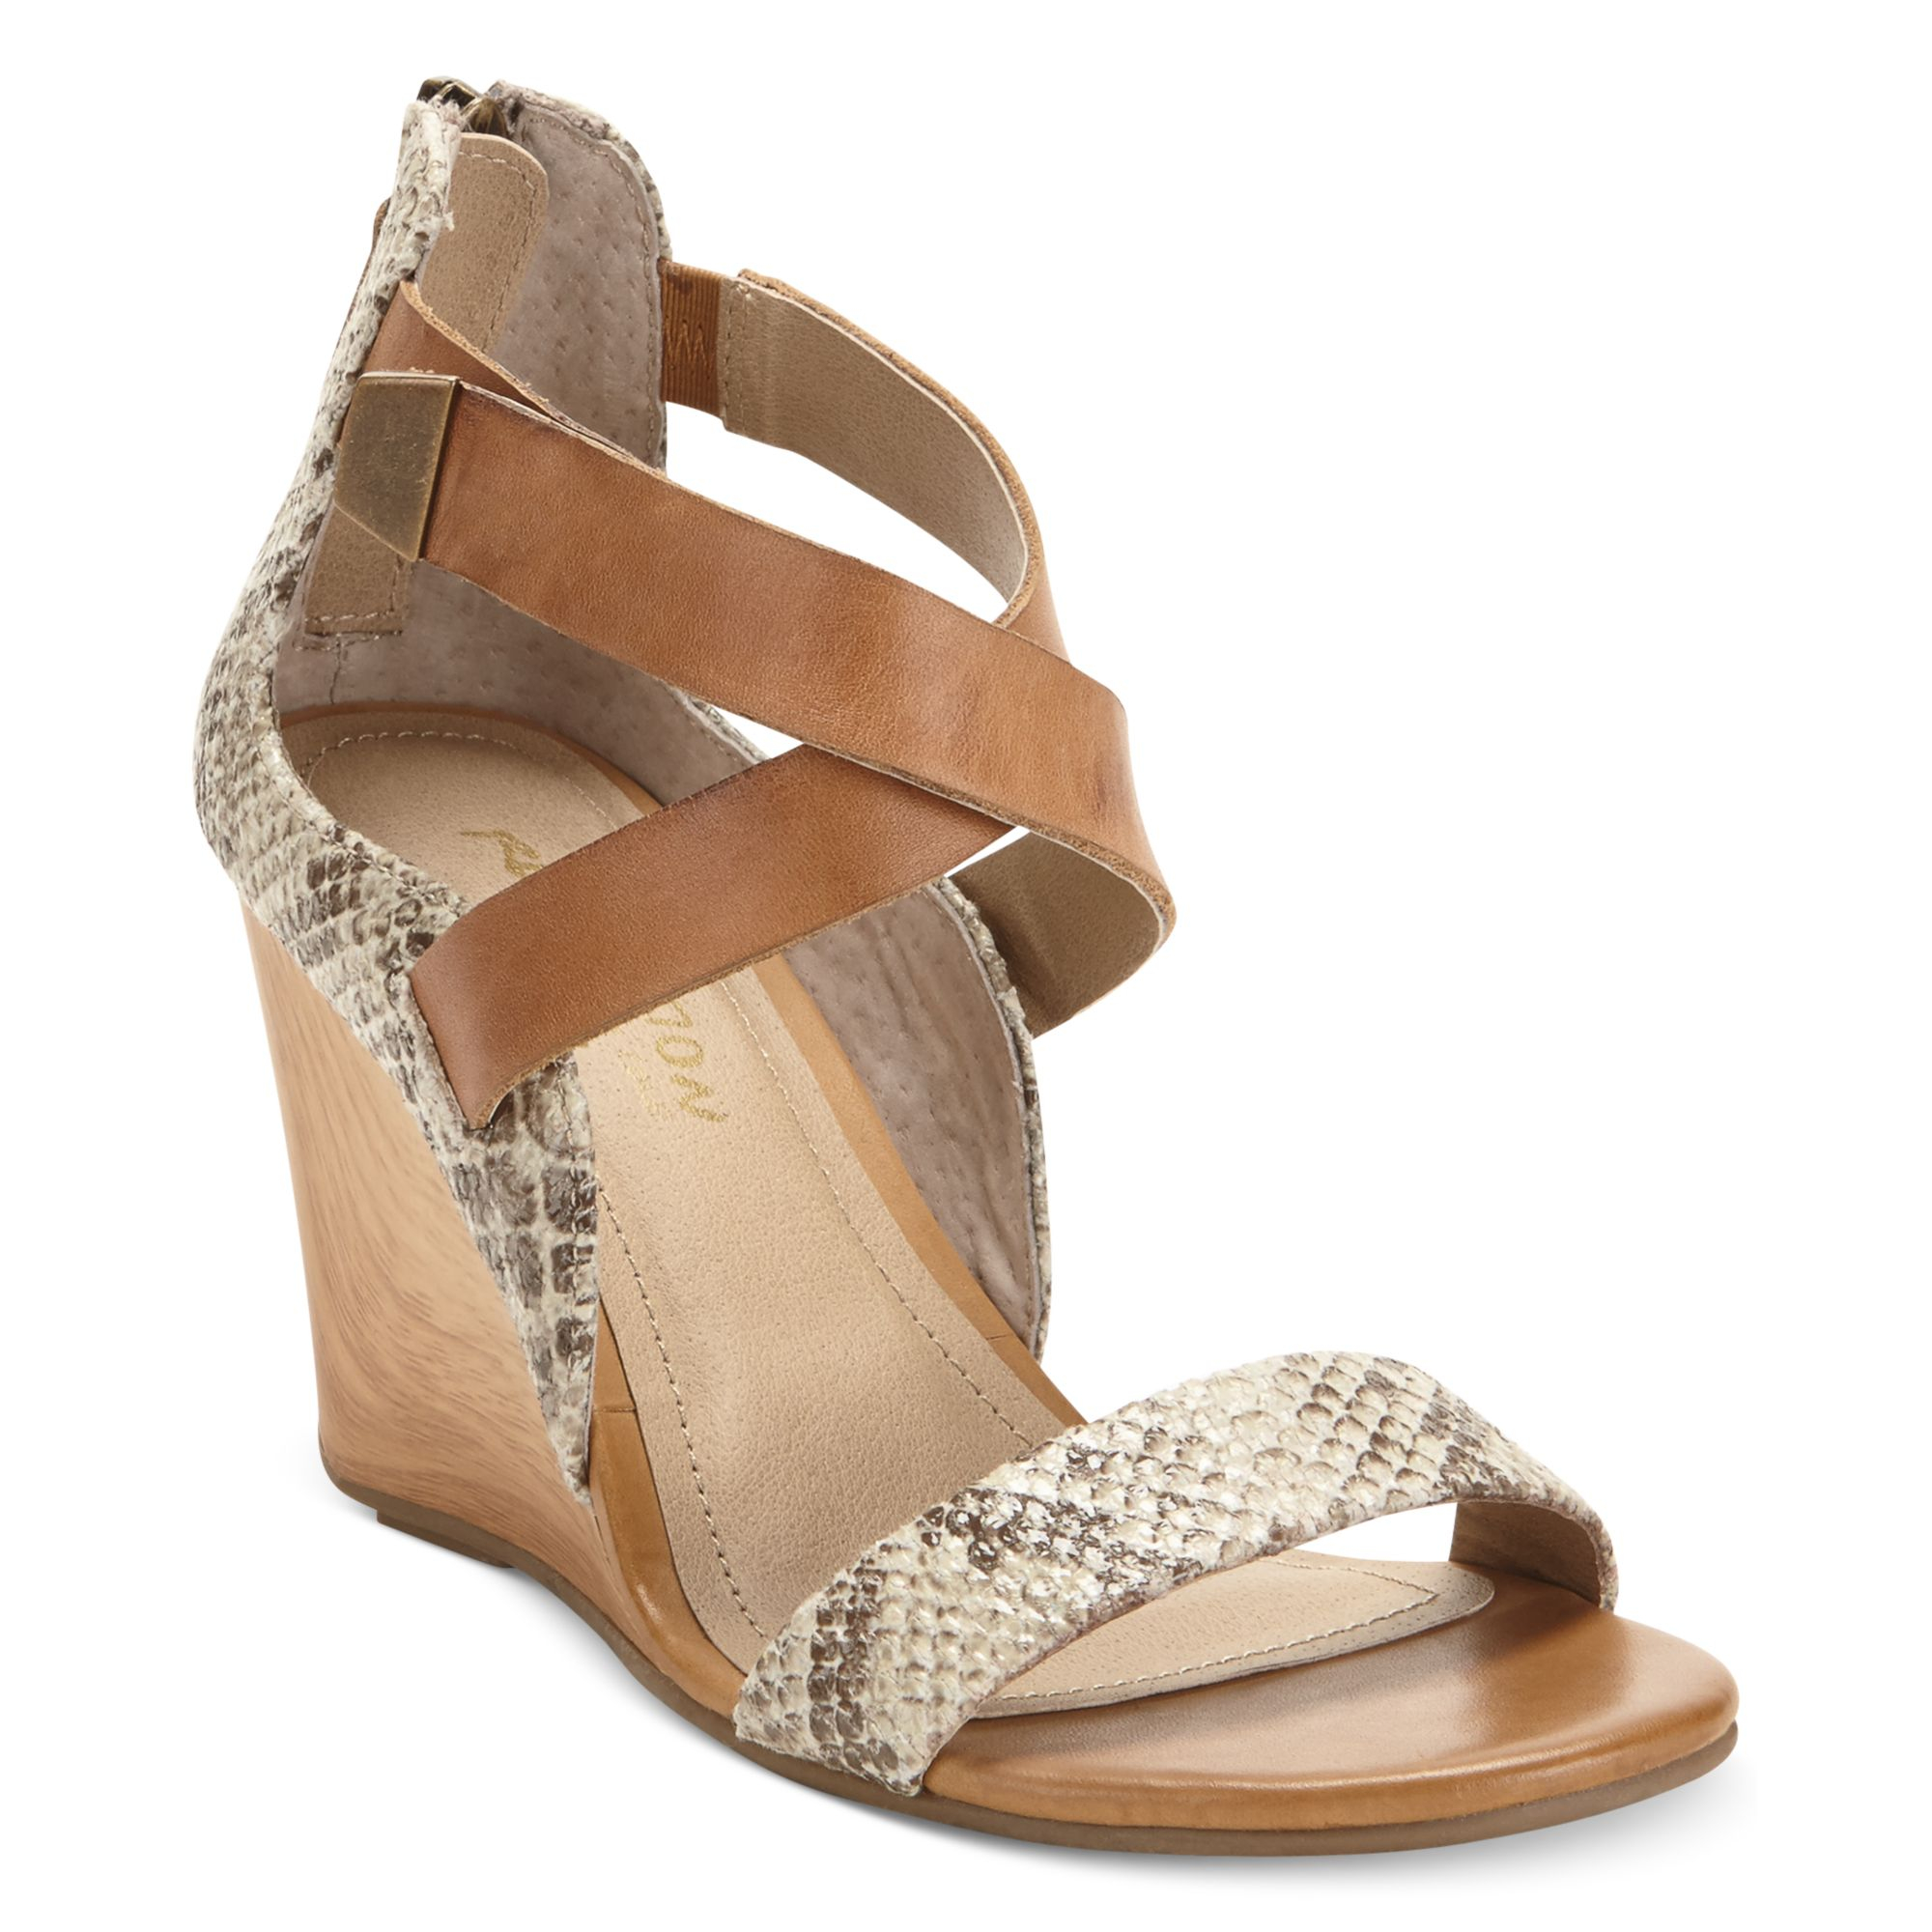 032d69ed11e Lyst - Kenneth Cole Reaction Oh Ava Wedge Sandals in Natural